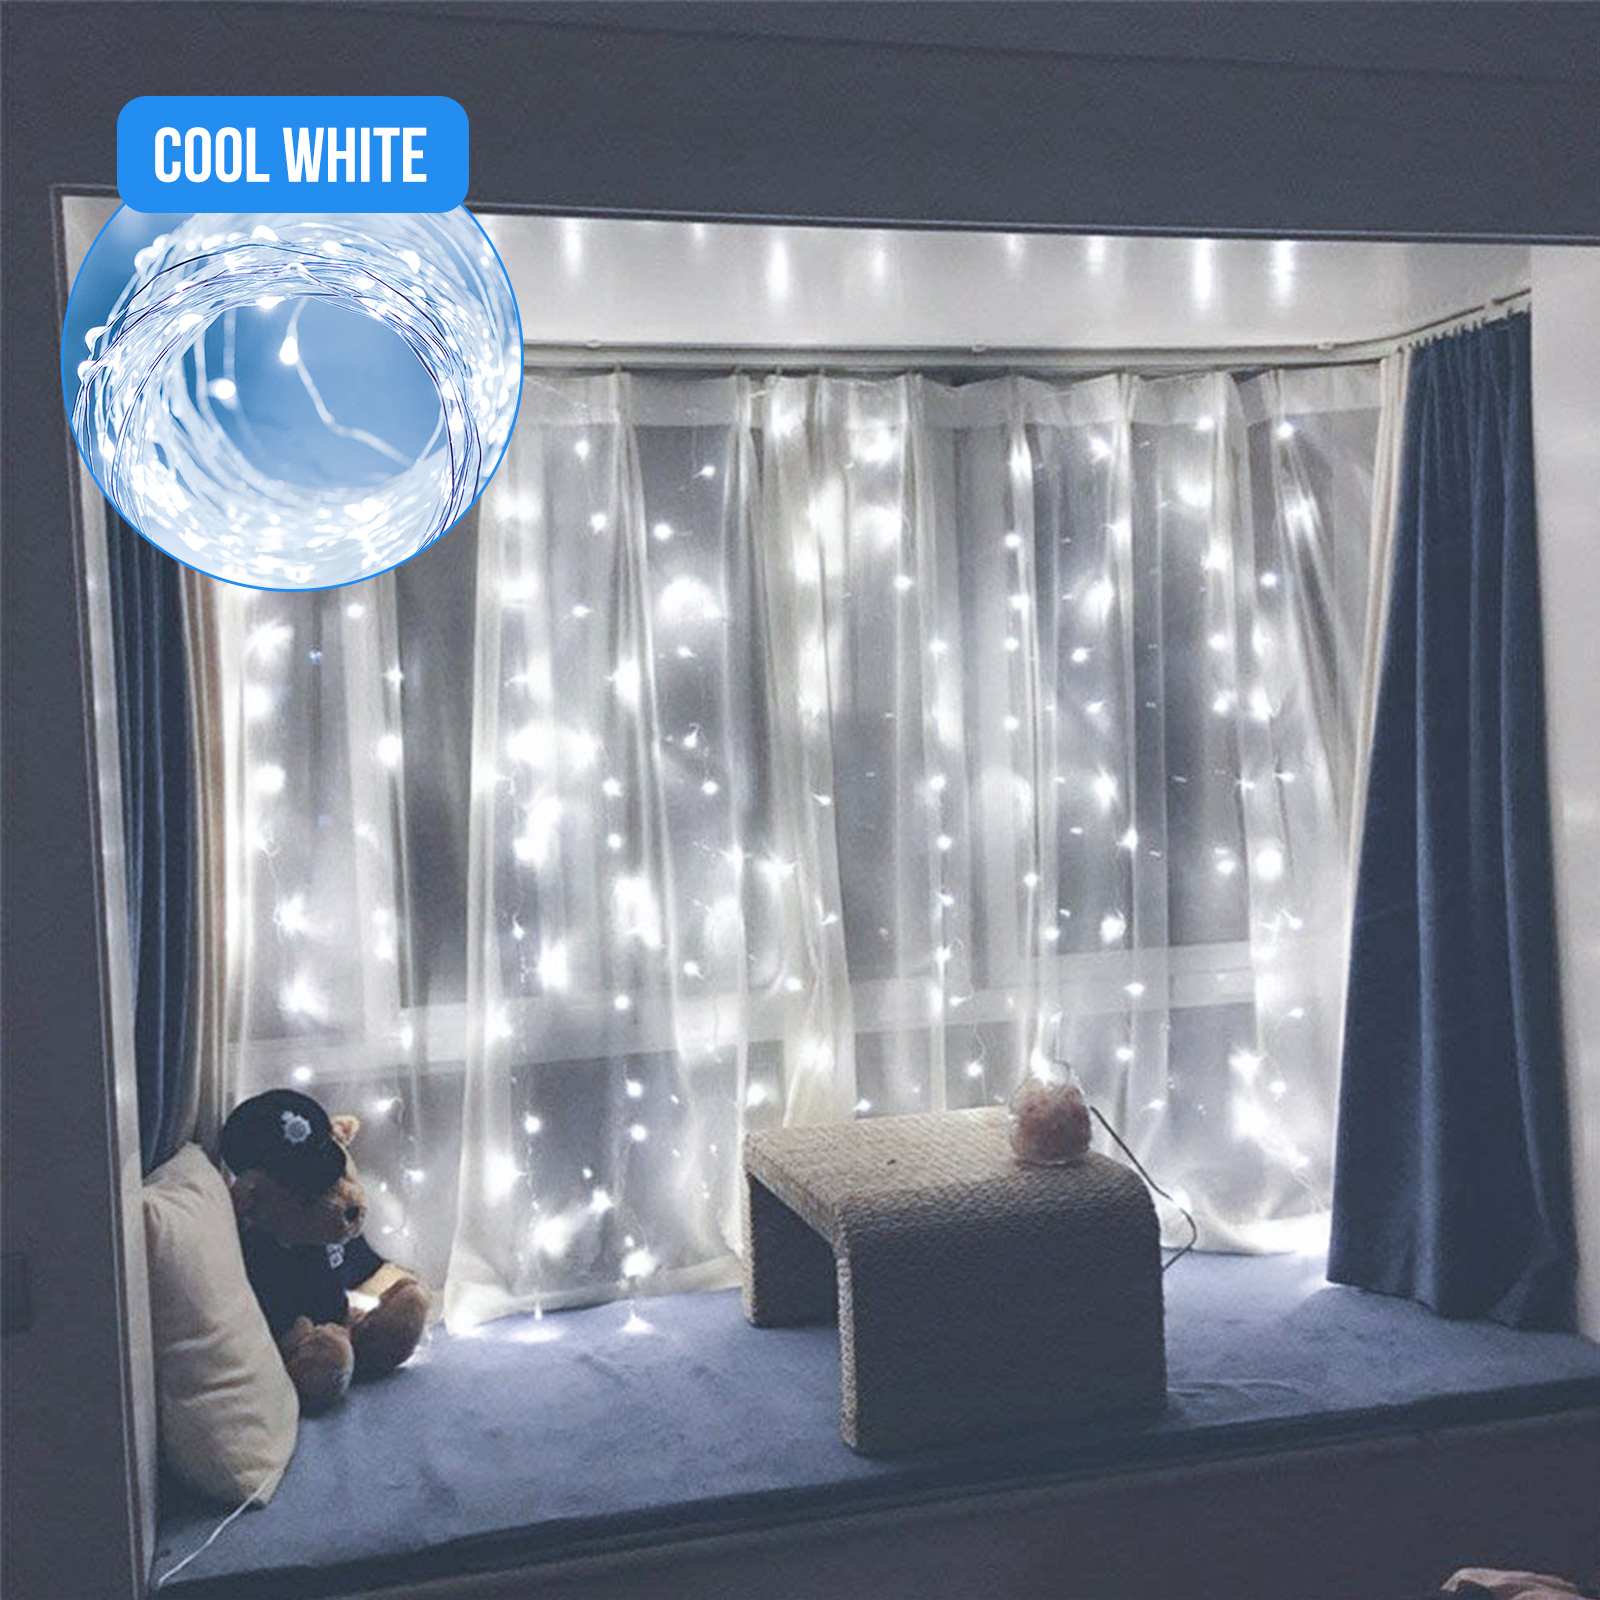 300LED-Party-Wedding-Curtain-Fairy-Lights-USB-String-Light-Home-w-Remote-Control thumbnail 13